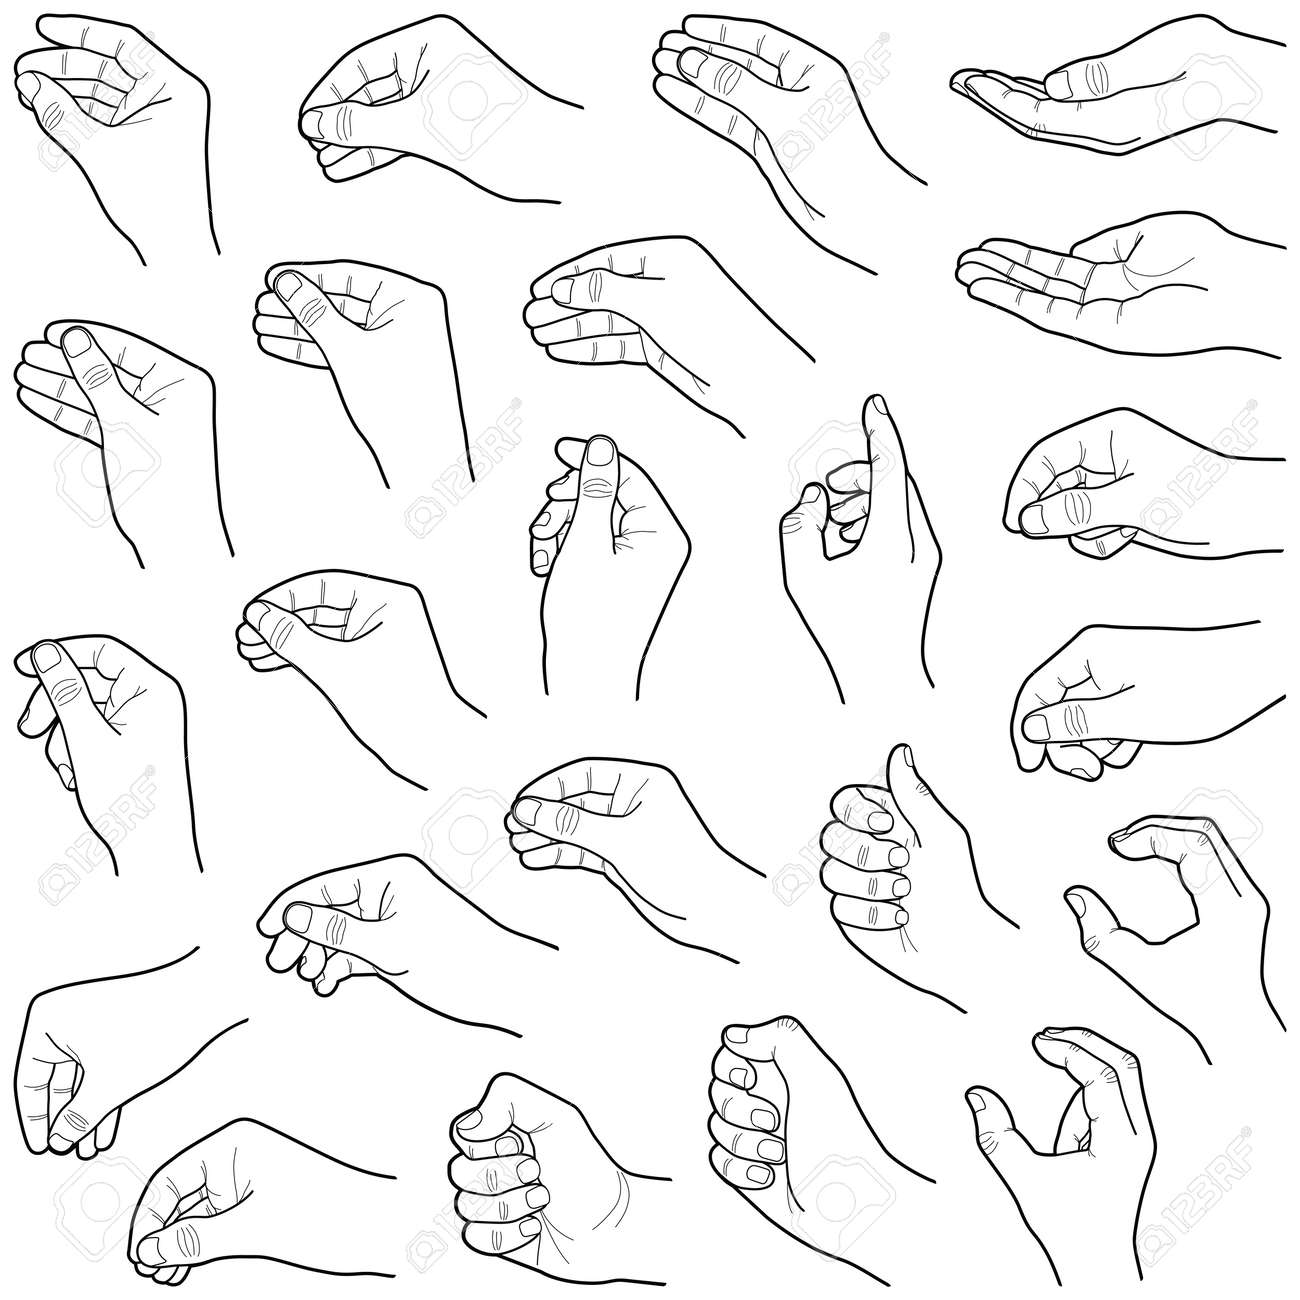 Hand collection - vector line illustration - 111362546